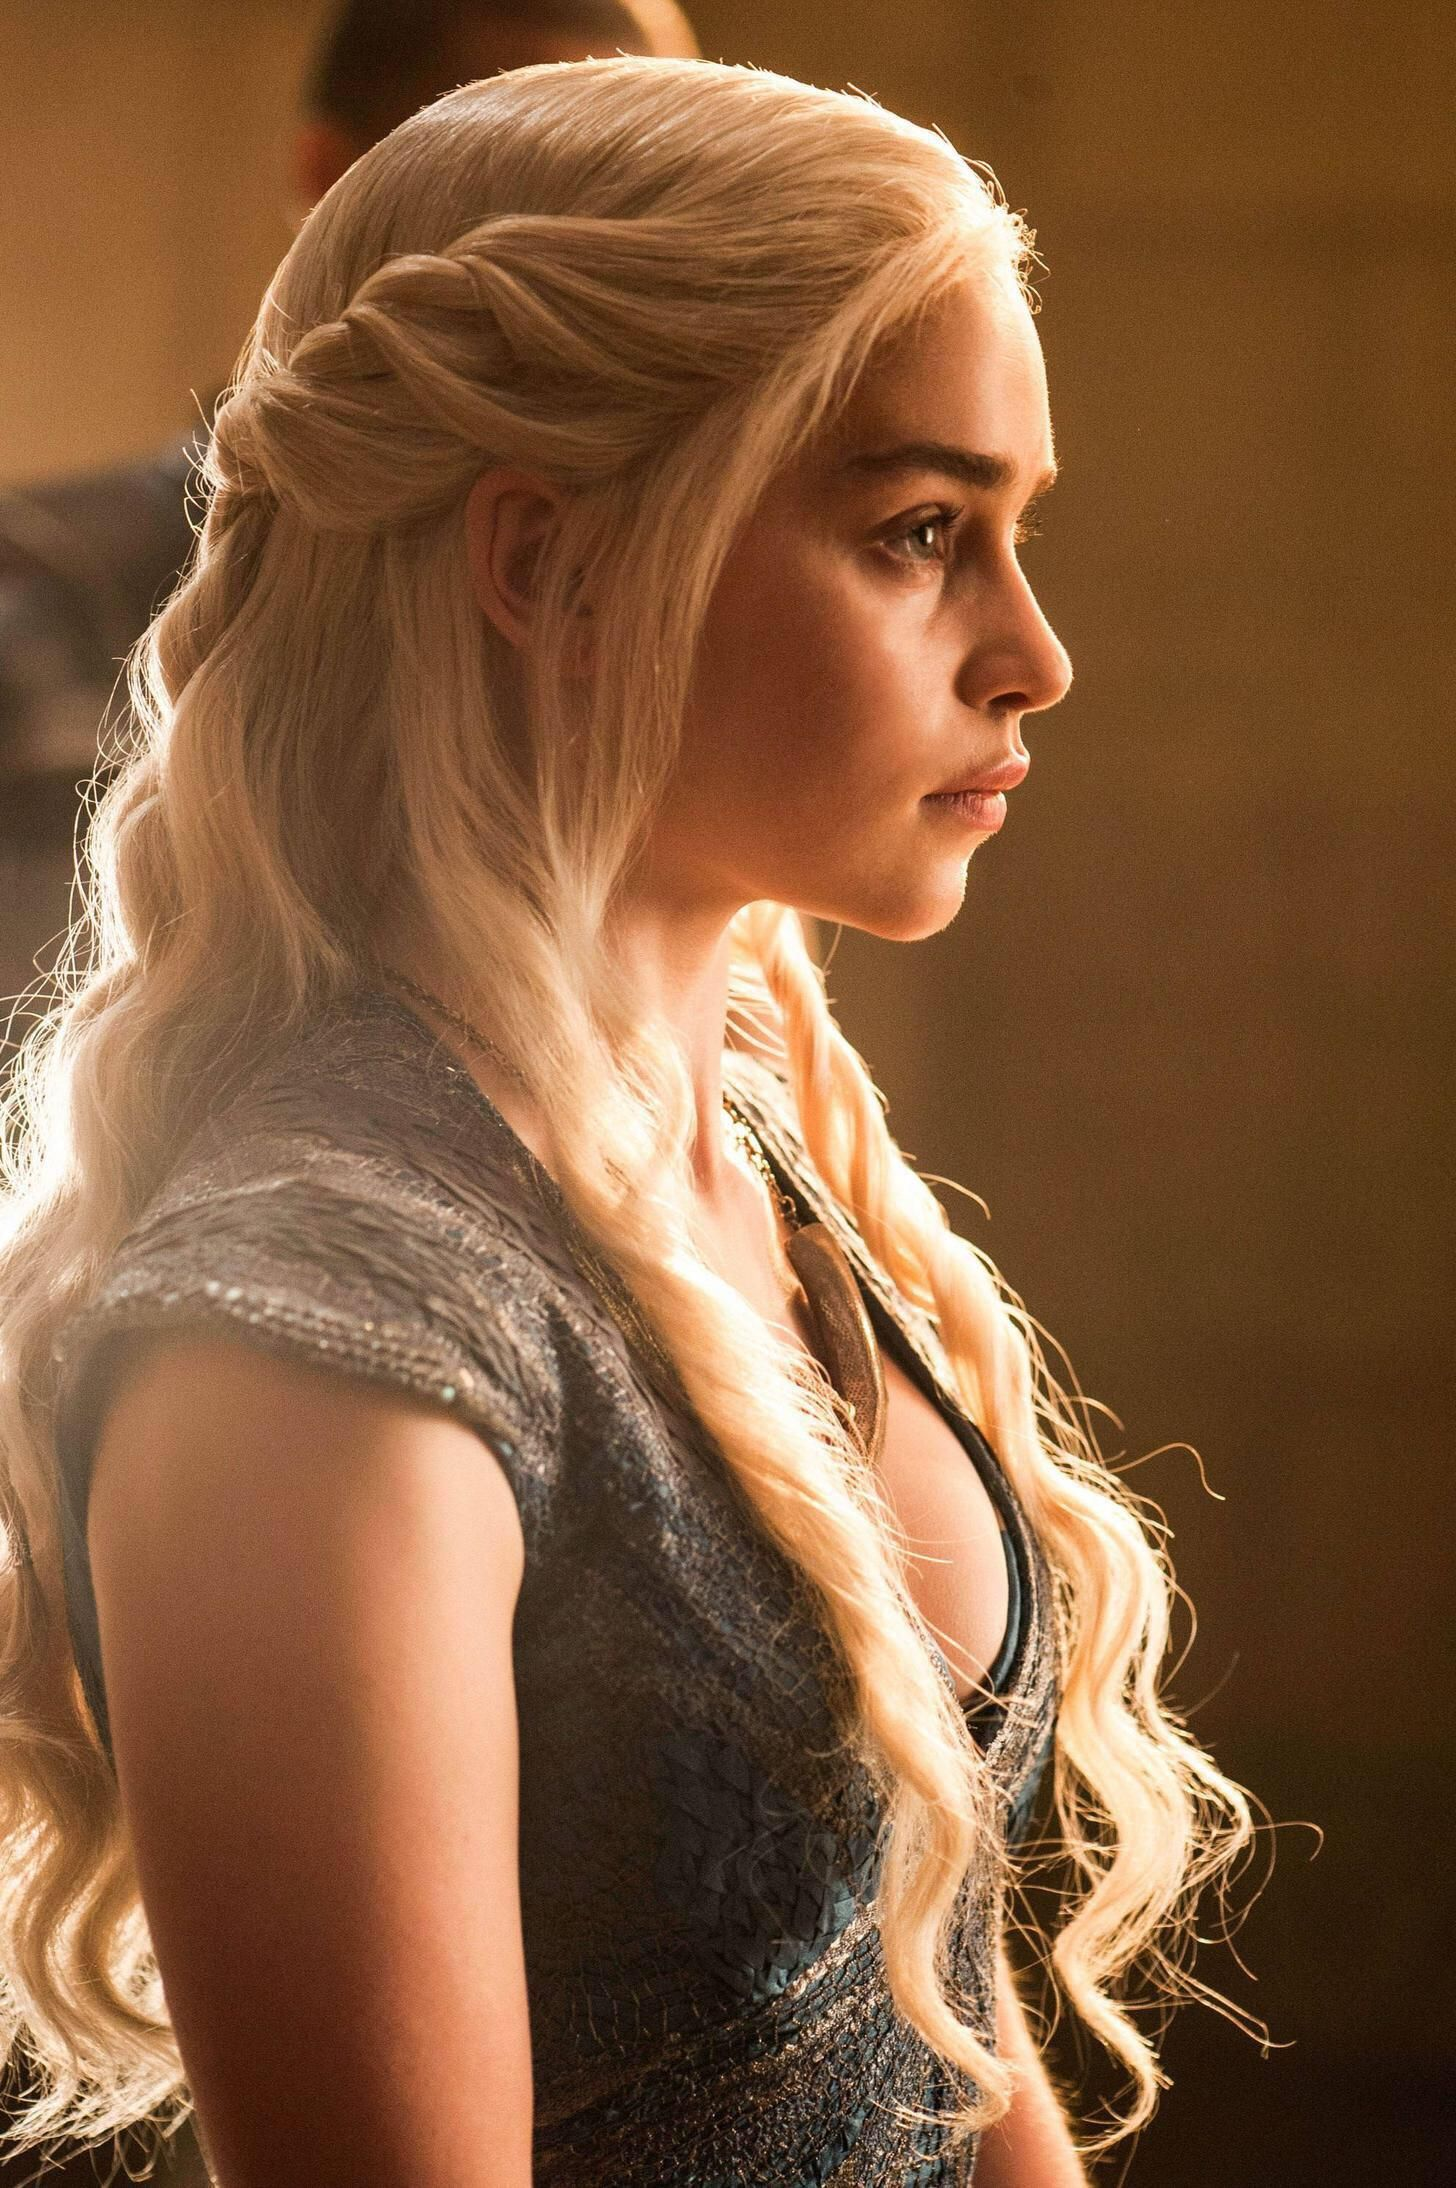 Pin by Deanna on YoU aRe My QuEeN   Emilia clarke, Hair